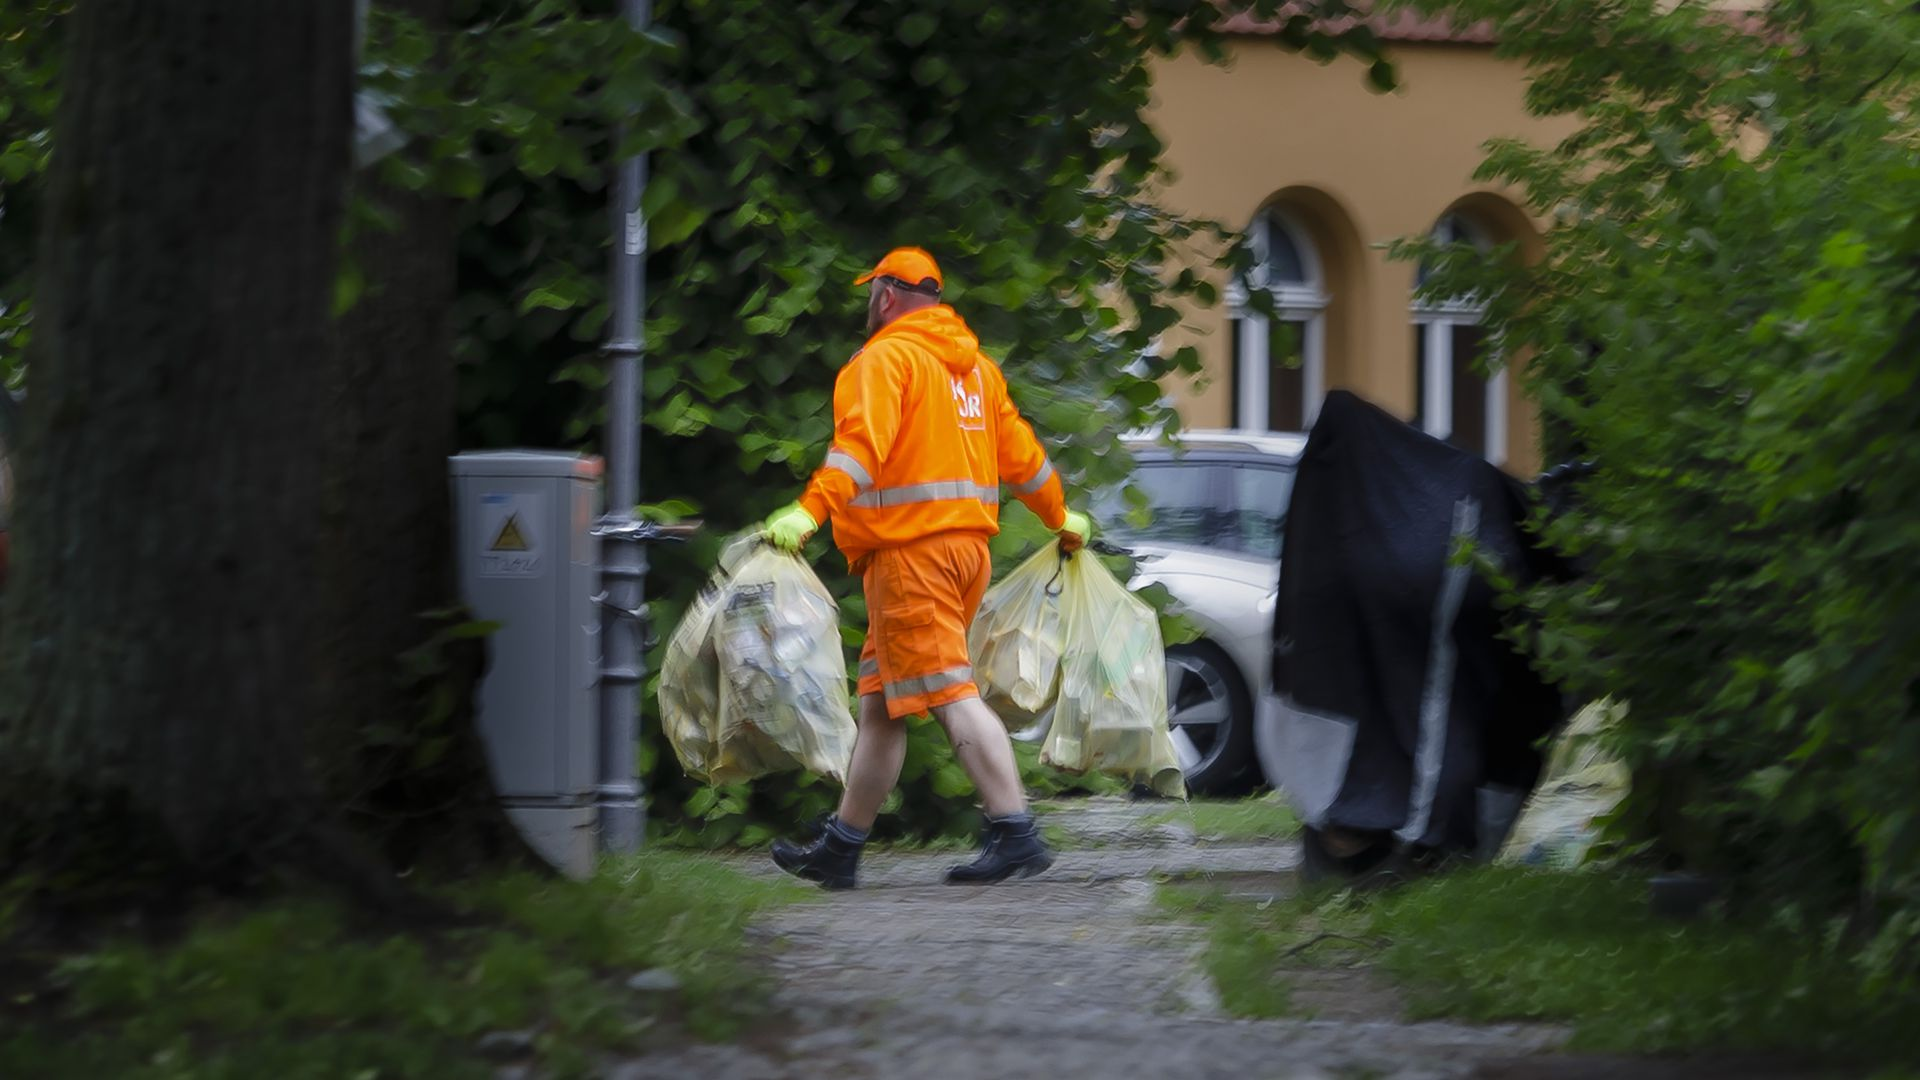 A garbage man carries bags of plastic waste for recycling